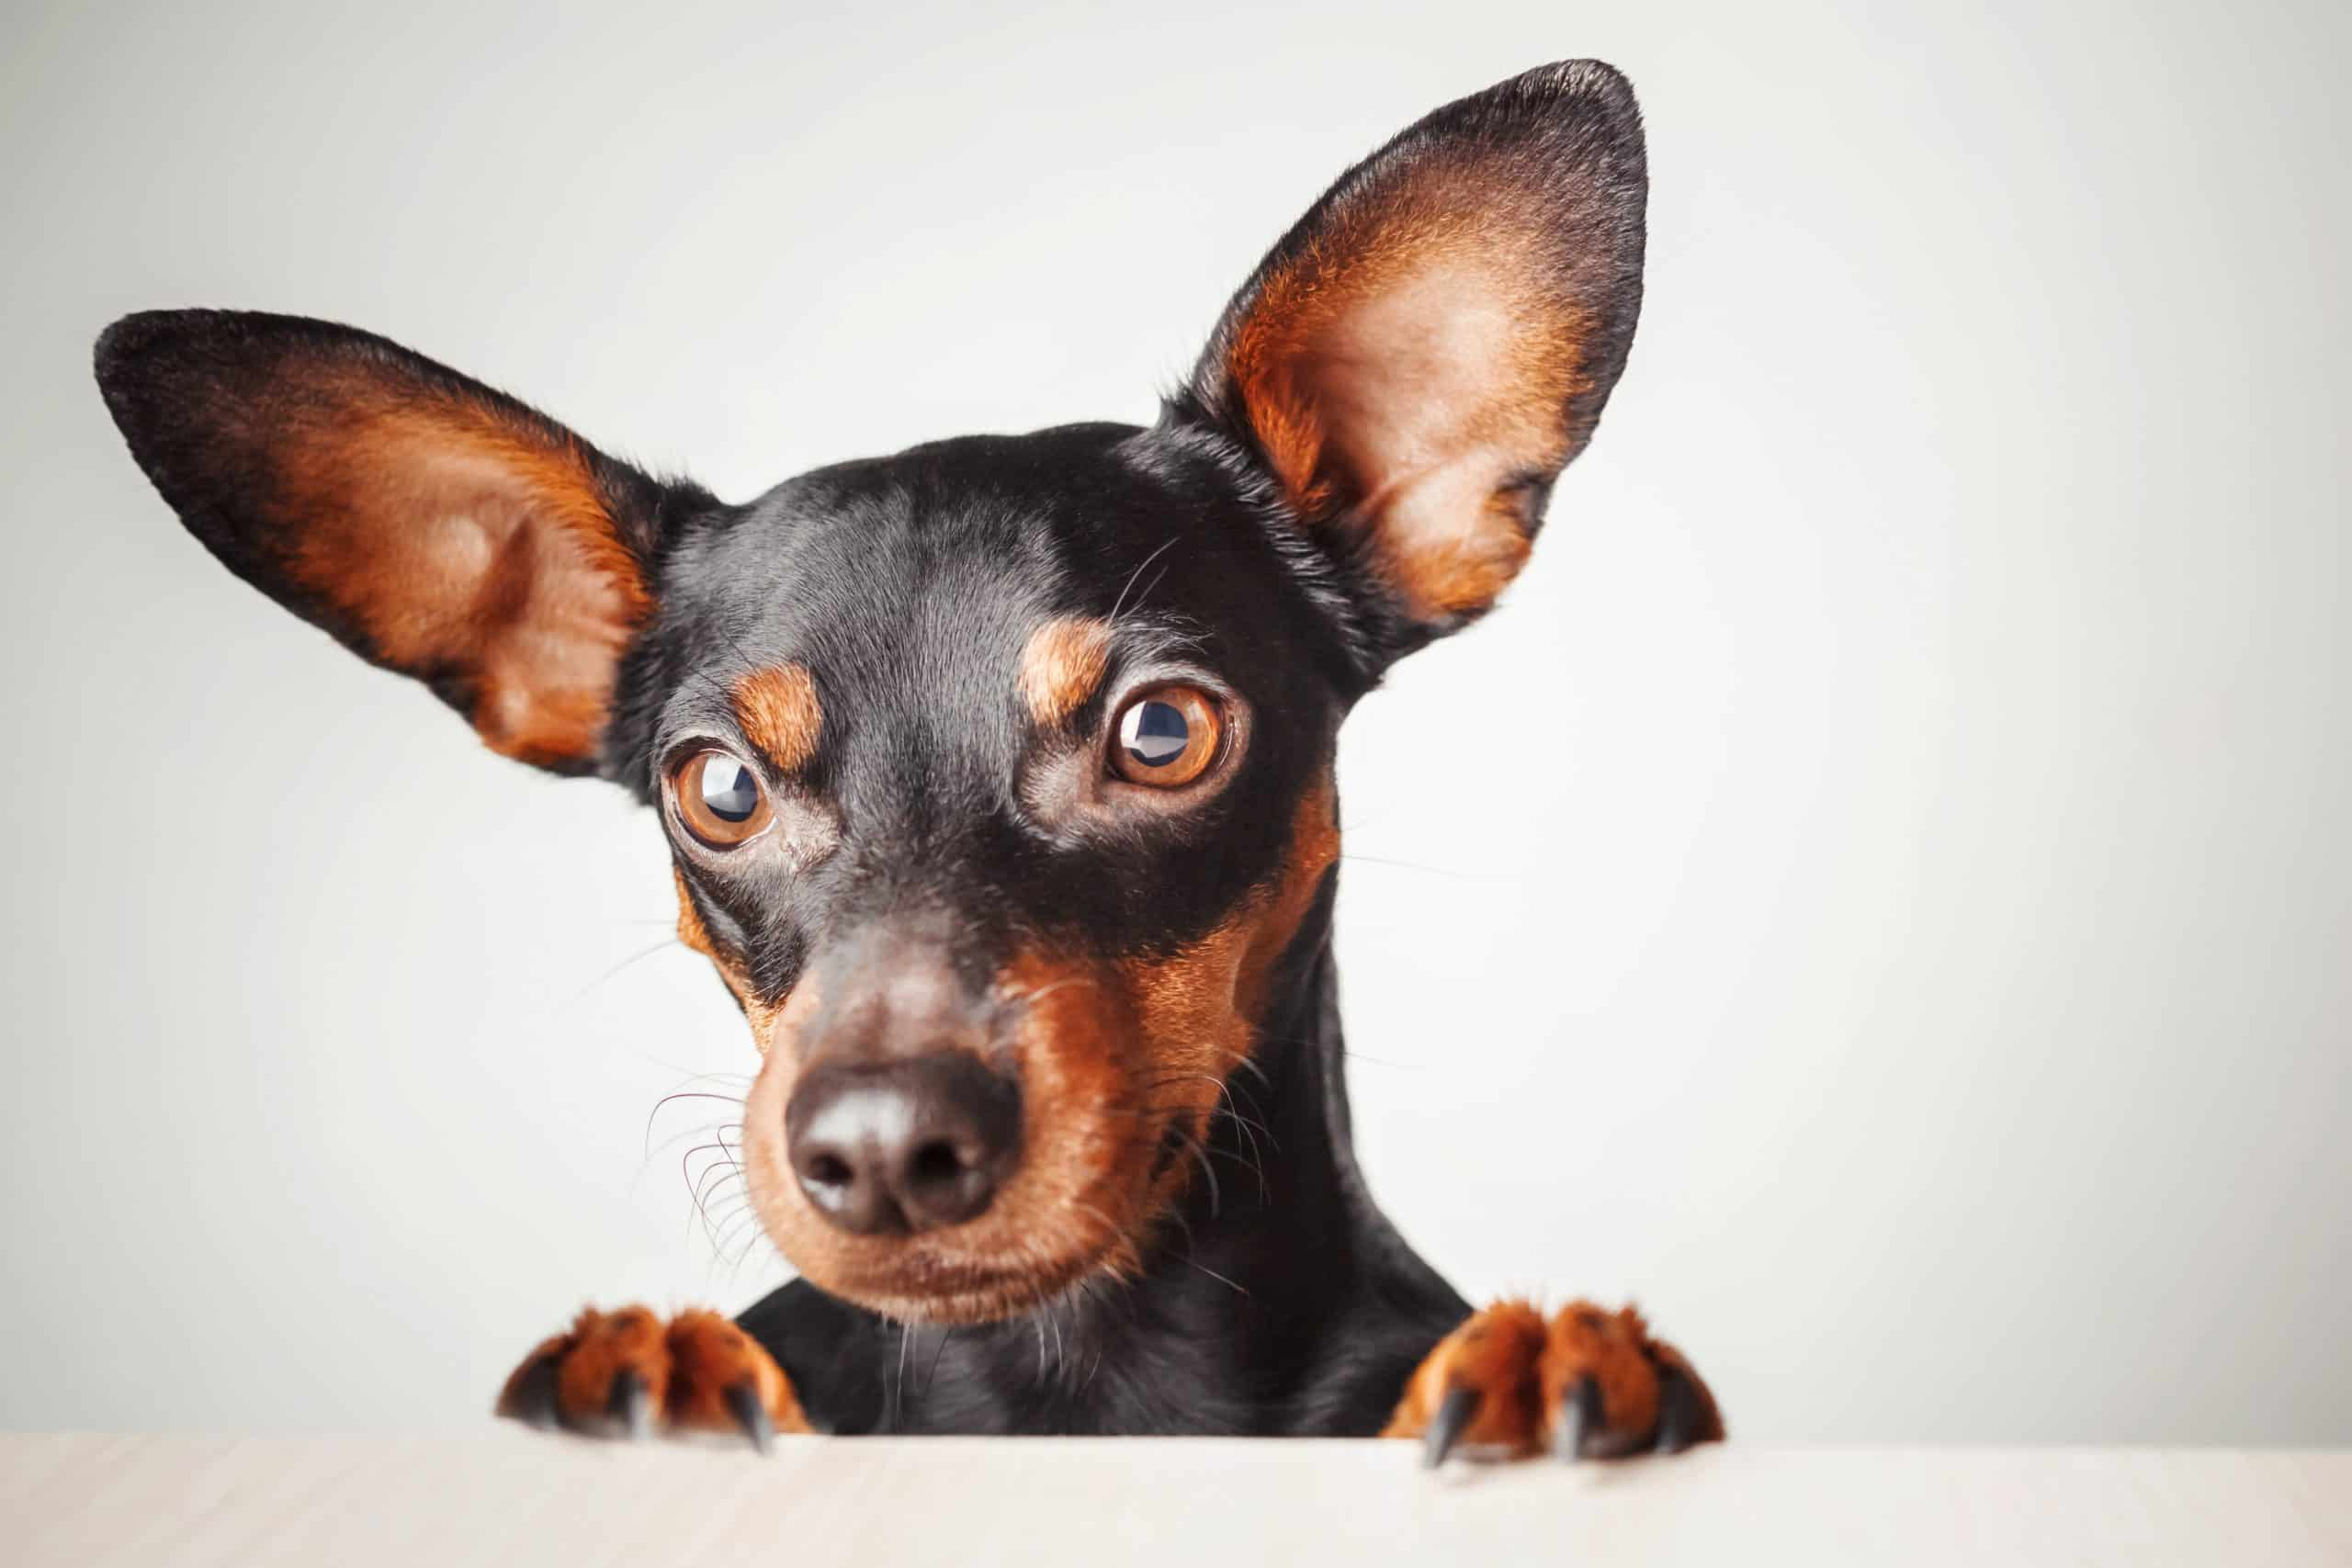 Miniature pinscher on white background. Feeding your miniature pinscher: Choaose small bite food to suit your dog's mouth, healthy snacks, and a digestive aid.